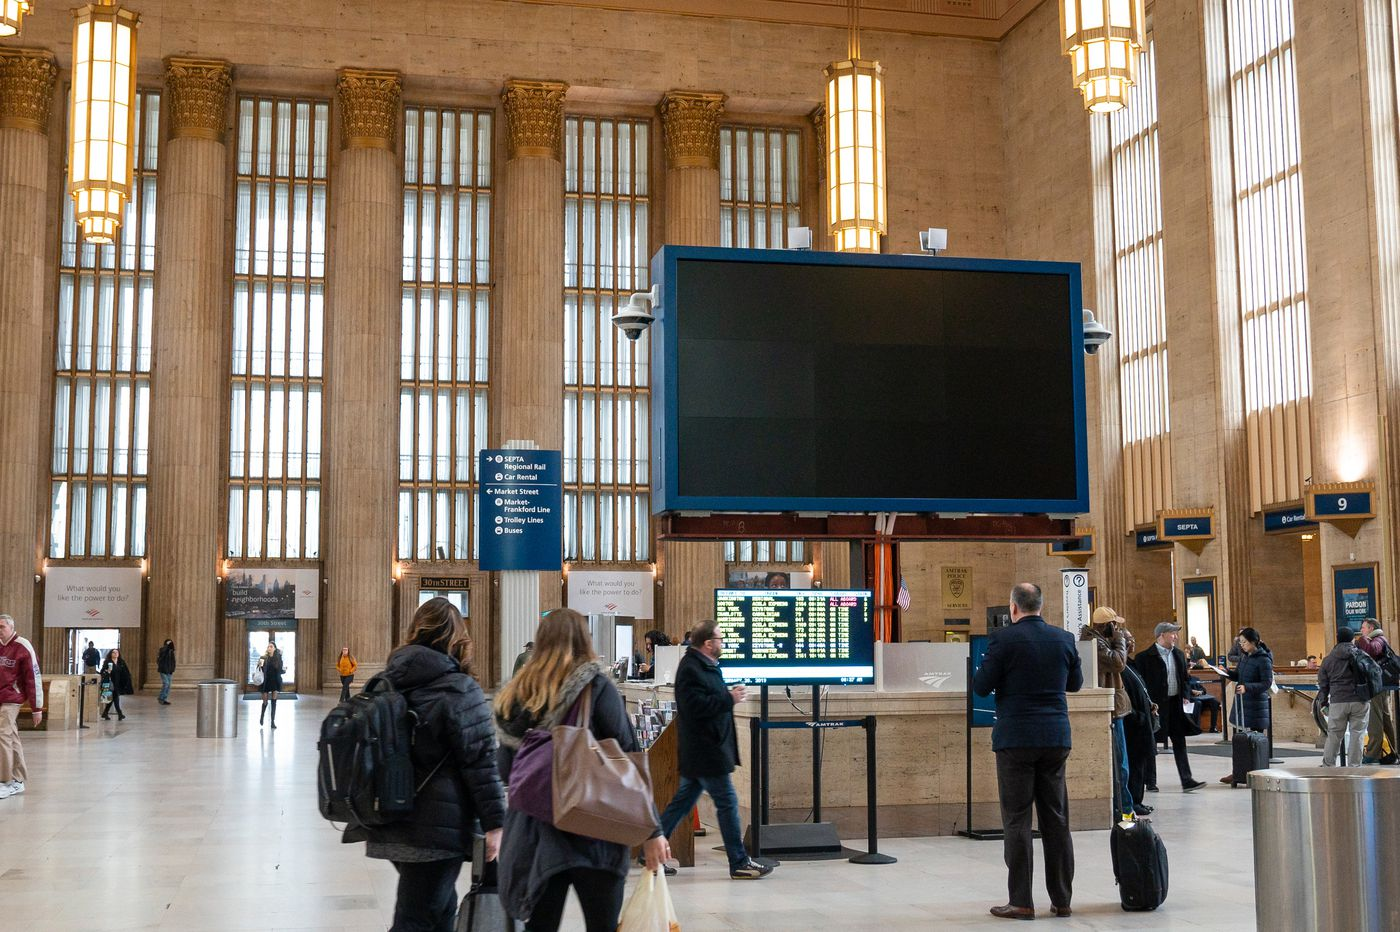 30th Street Station's interior is now historically preserved — only the fourth indoor space in Philly